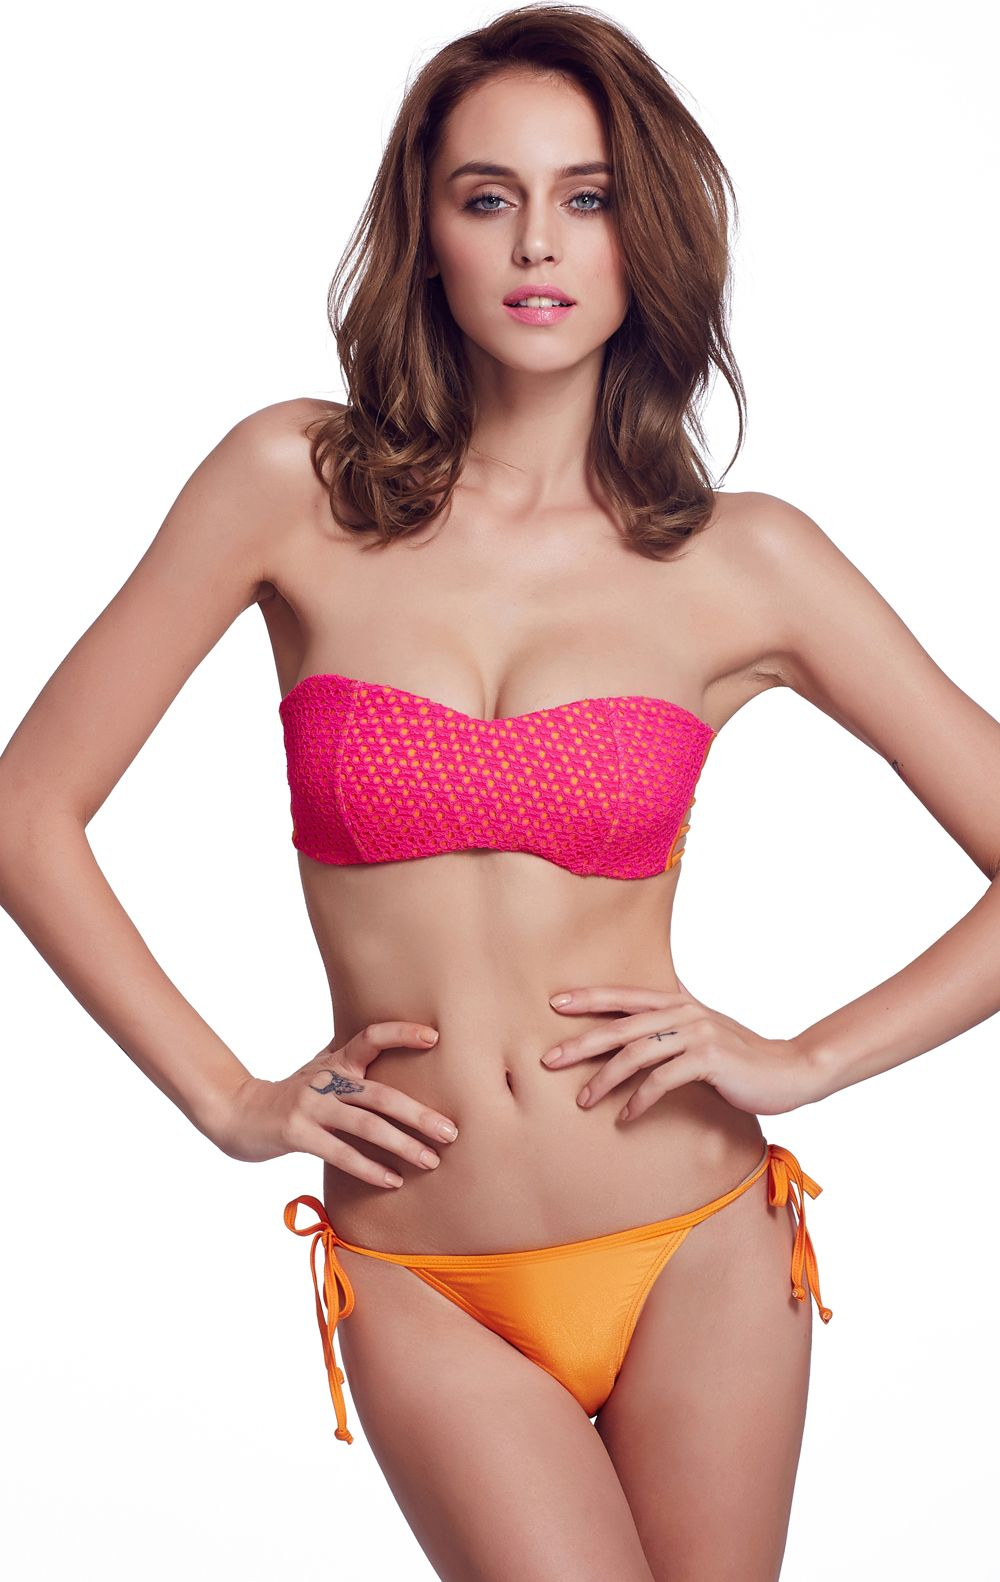 f3e02235065b7 Shop Red Lace Bandage Top With Yellow Triangle Bikini Set online. SheIn  offers Red Lace